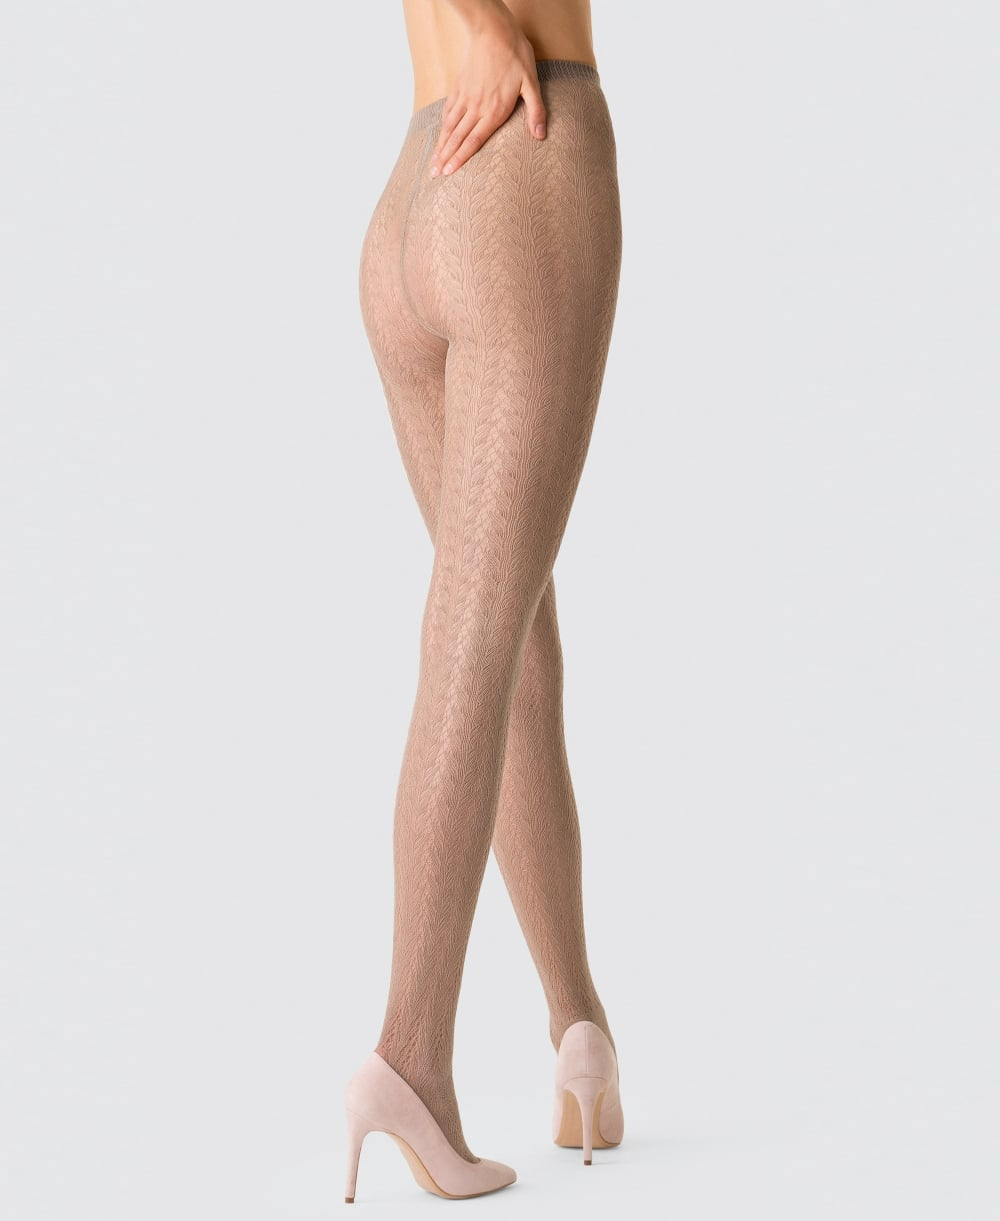 664172b4bc0 Fogal Ilaria Cotton Tights - Tights from luxury-legs.com UK